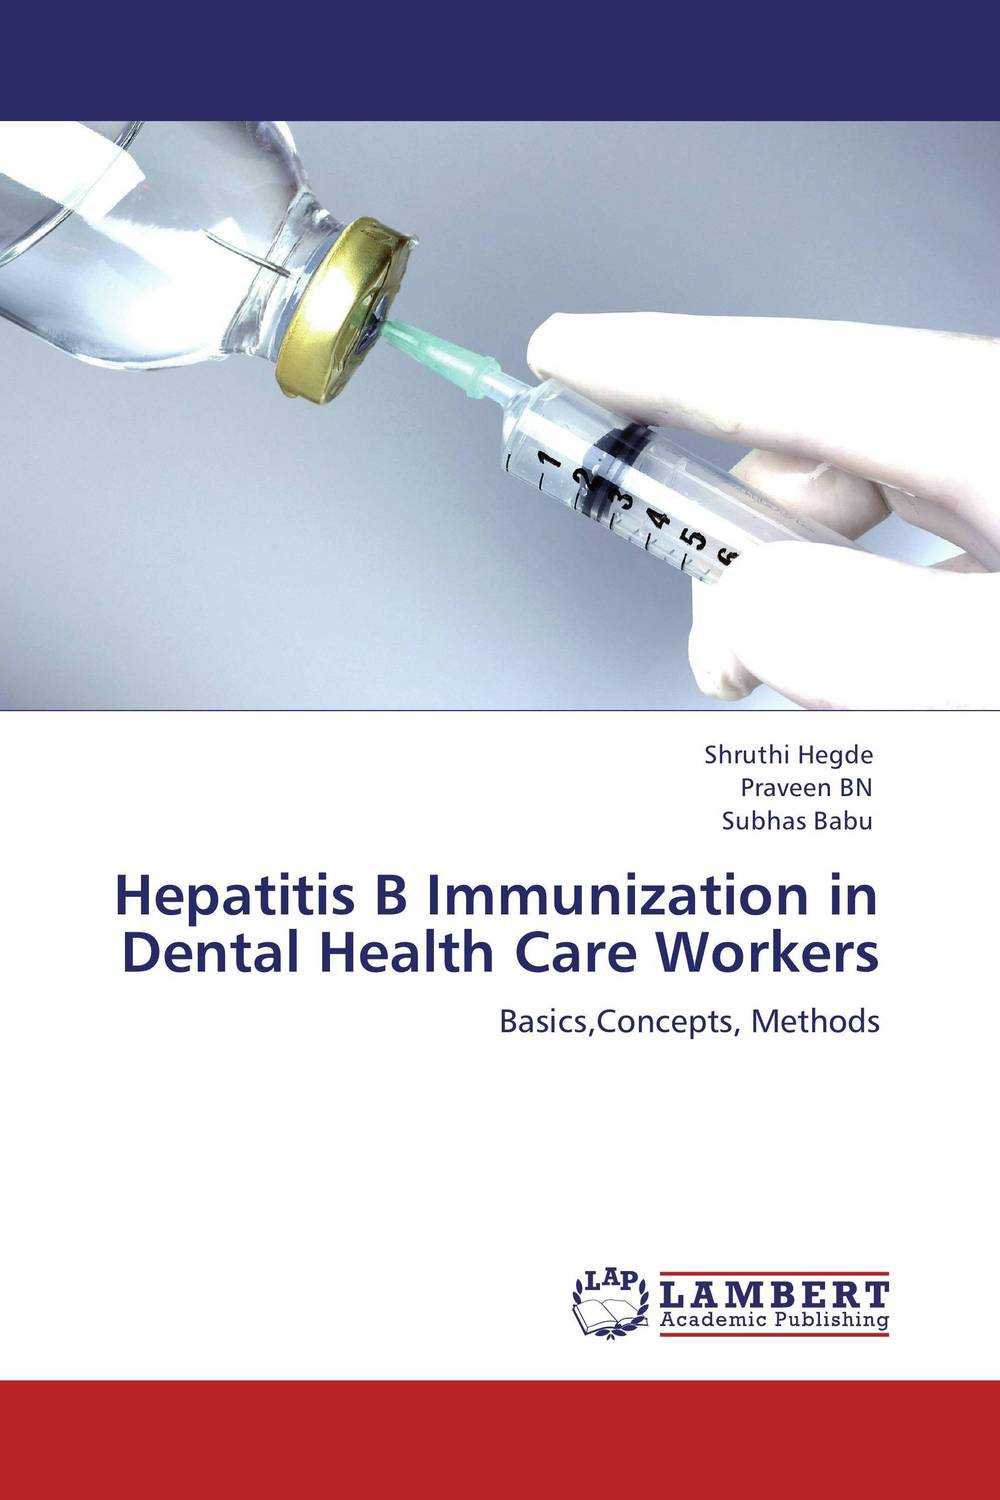 Hepatitis B Immunization in Dental Health Care Workers improving hand hygiene compliance among dental health workers